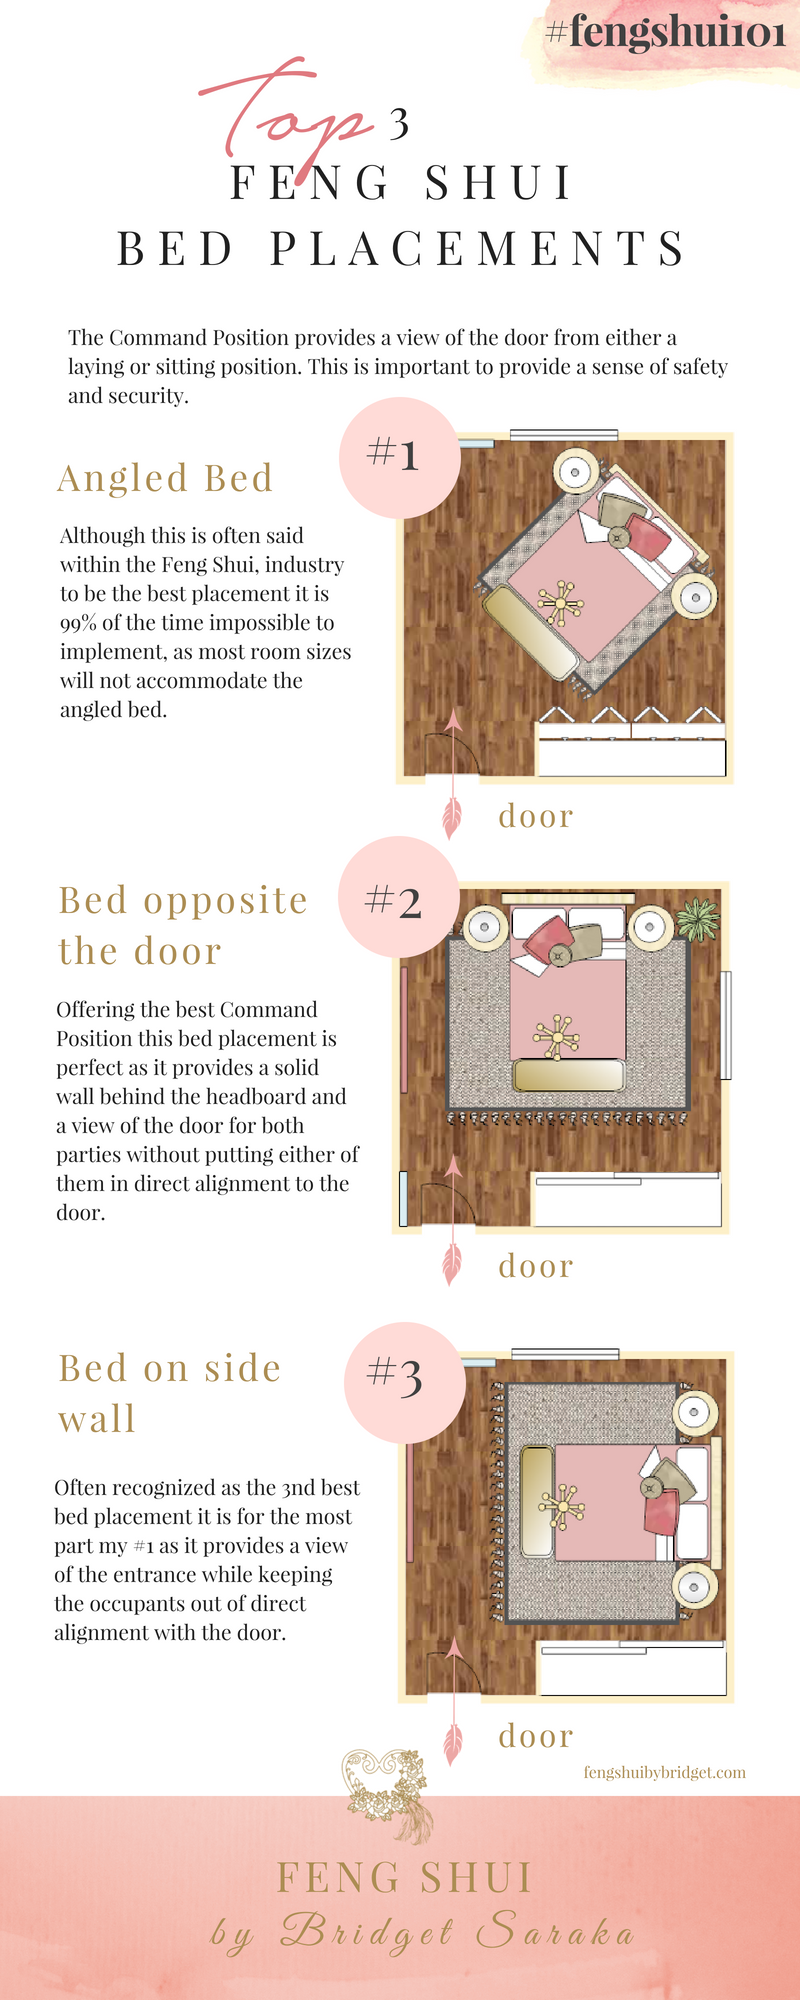 Top 3 Best Feng Shui Bed Placements #fengshui101 - Feng Shui ...